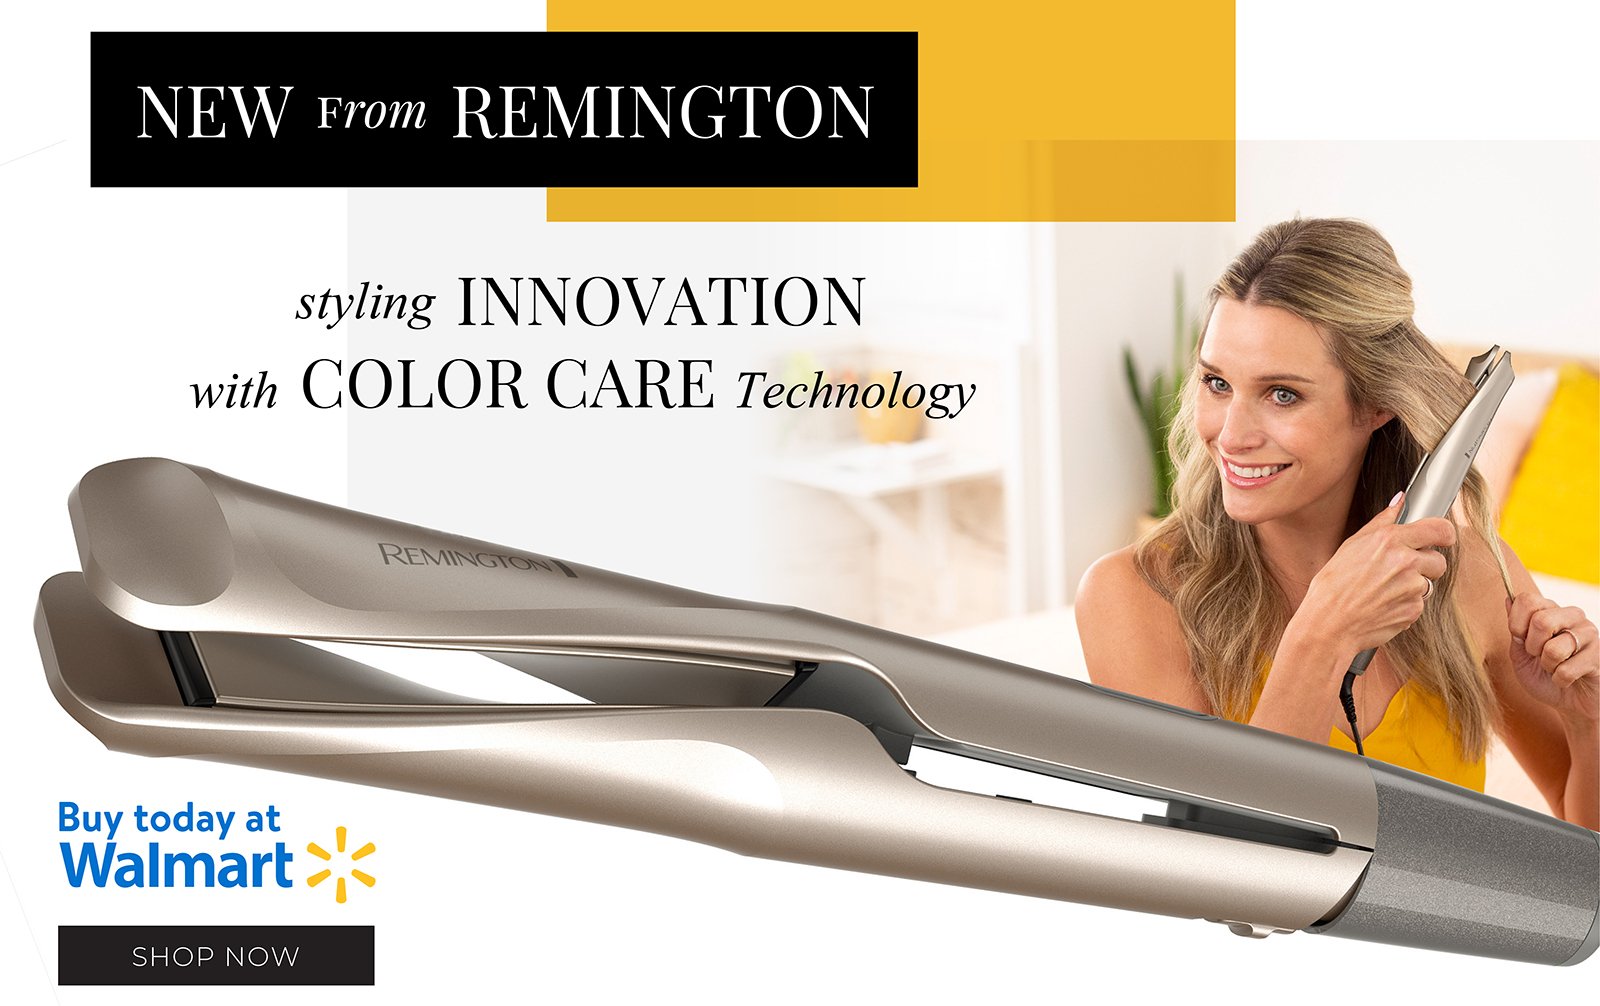 Styling innovation with color care technology.  Buy today at walmart.